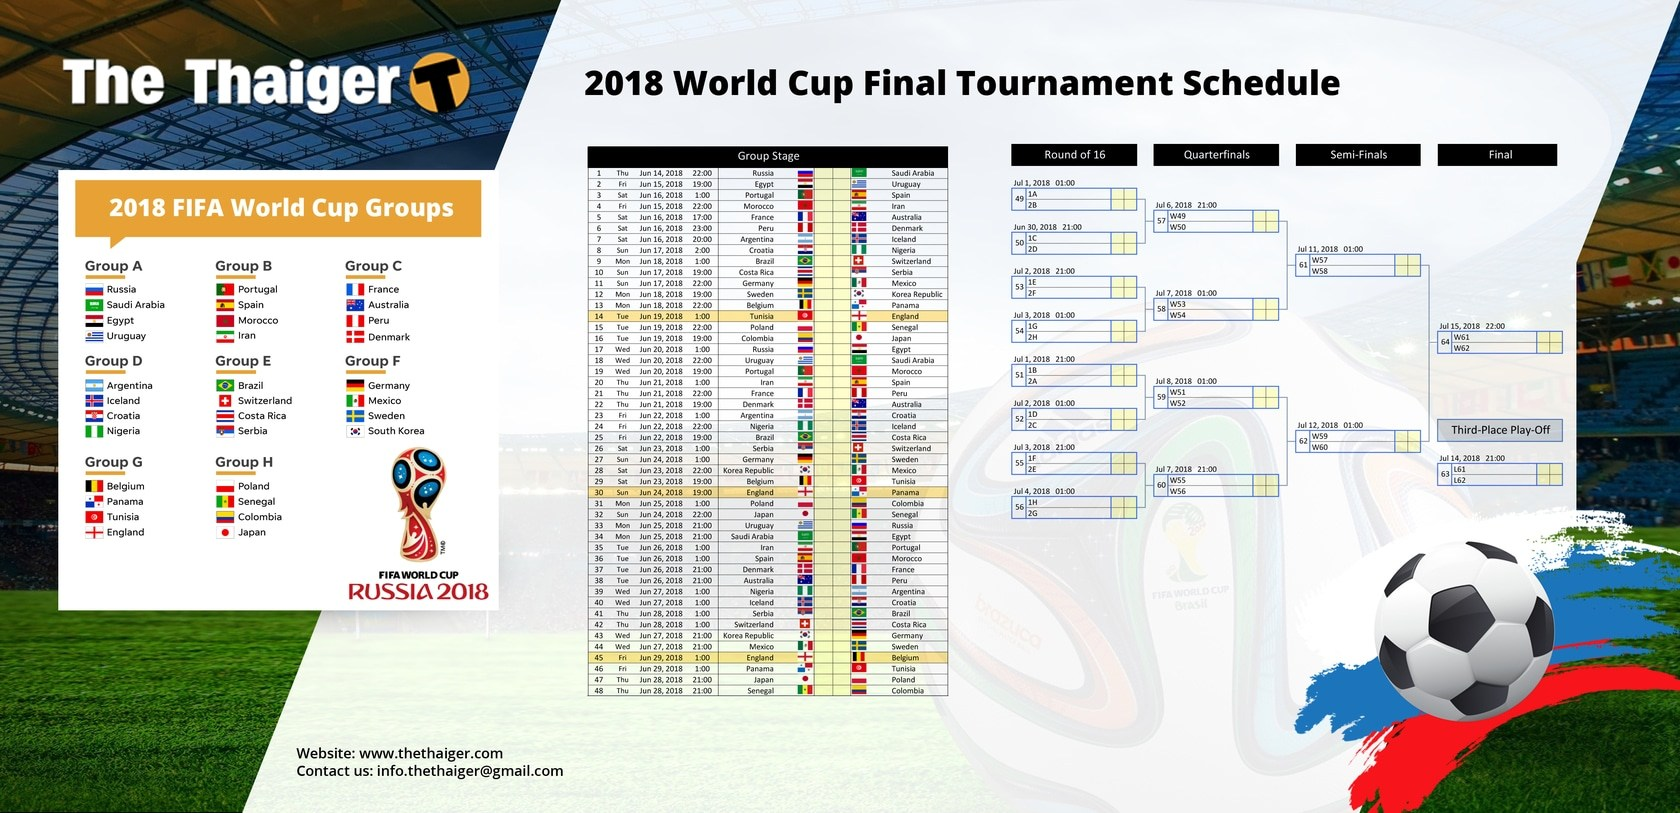 Thaiger World Cup wall chart – print it out, pin it up, fill it in | The Thaiger